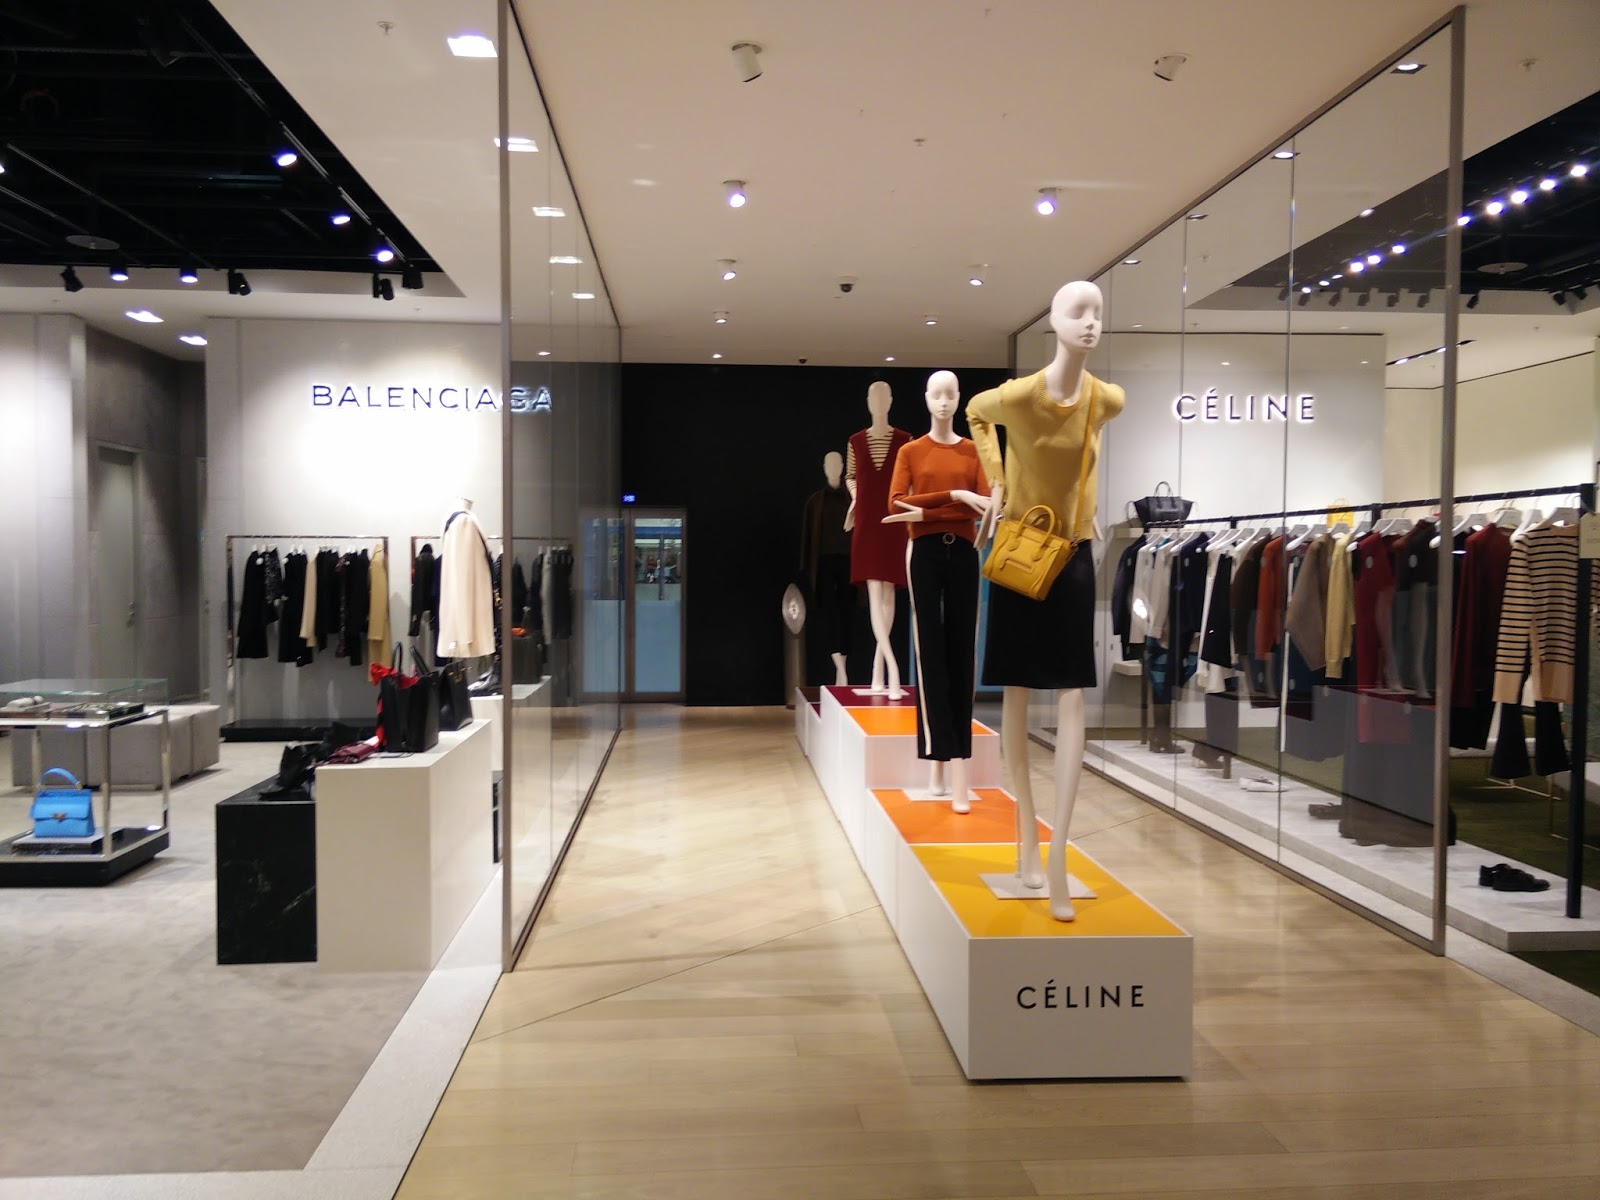 Selfridges Personal Shopping And New Designer Womenswear And Shoes Department It 39 S A Blogger 39 S